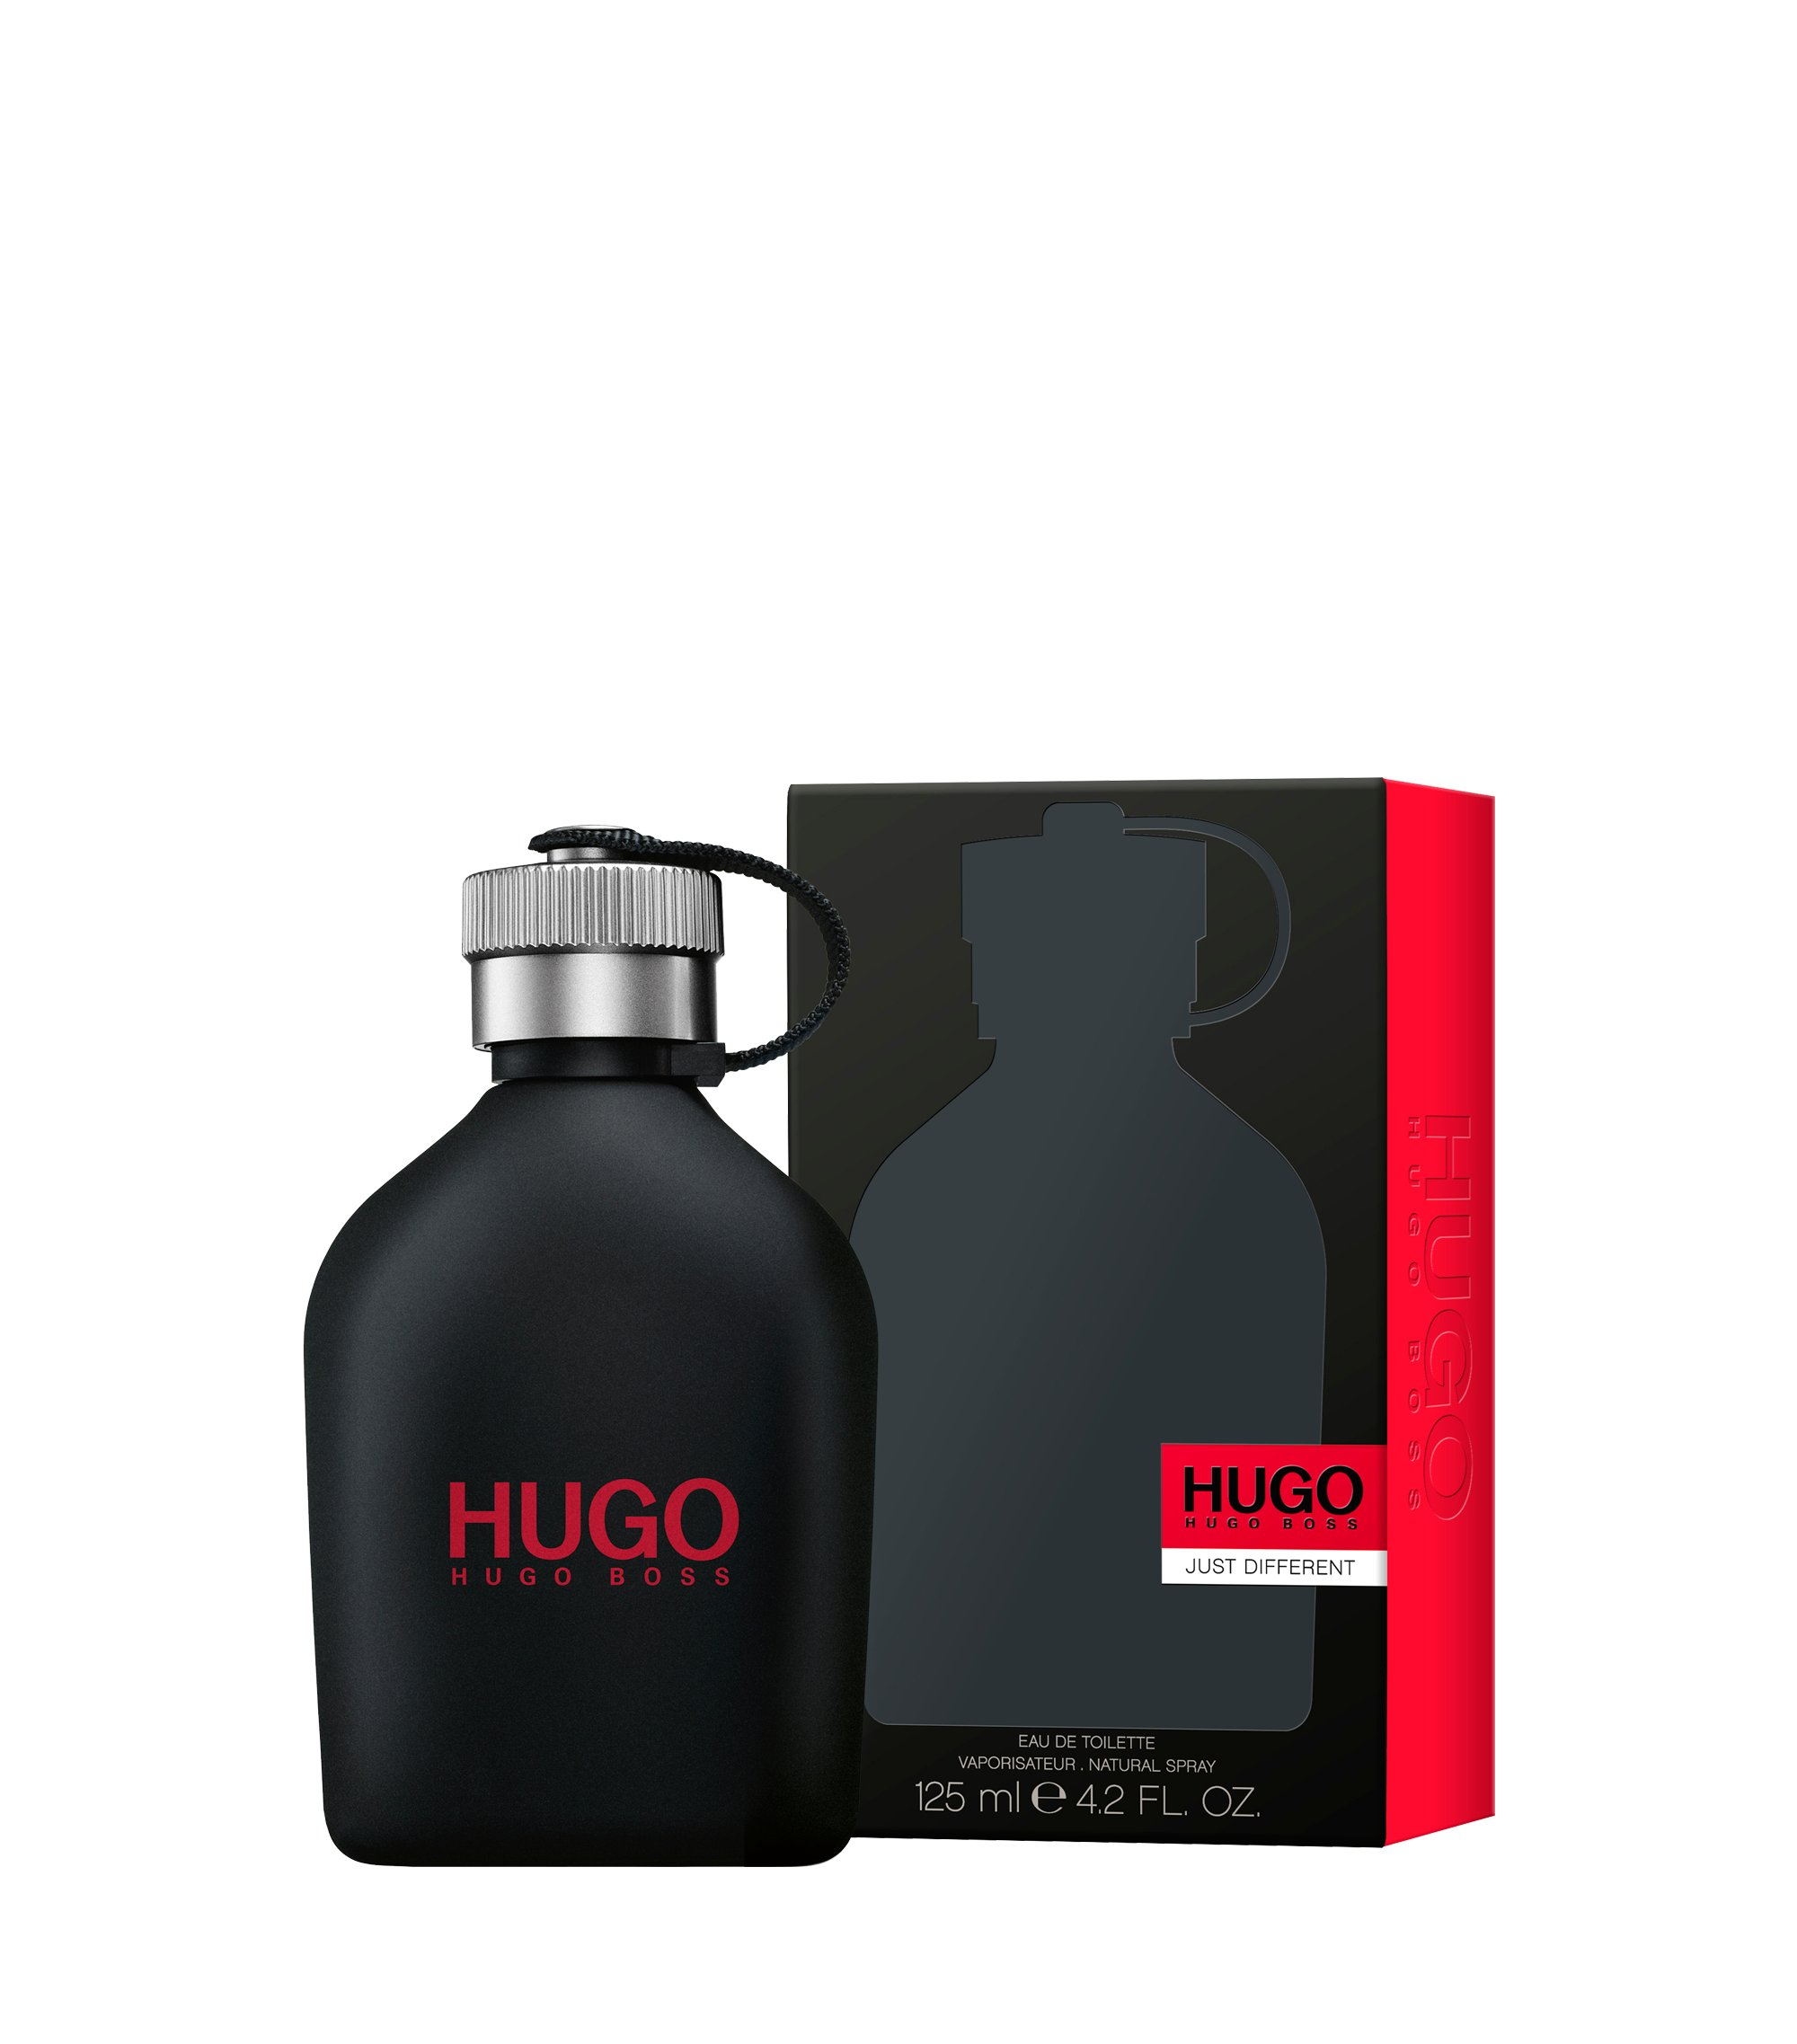 Eau de Toilette HUGO Just Different, 125 ml, Assorted-Pre-Pack